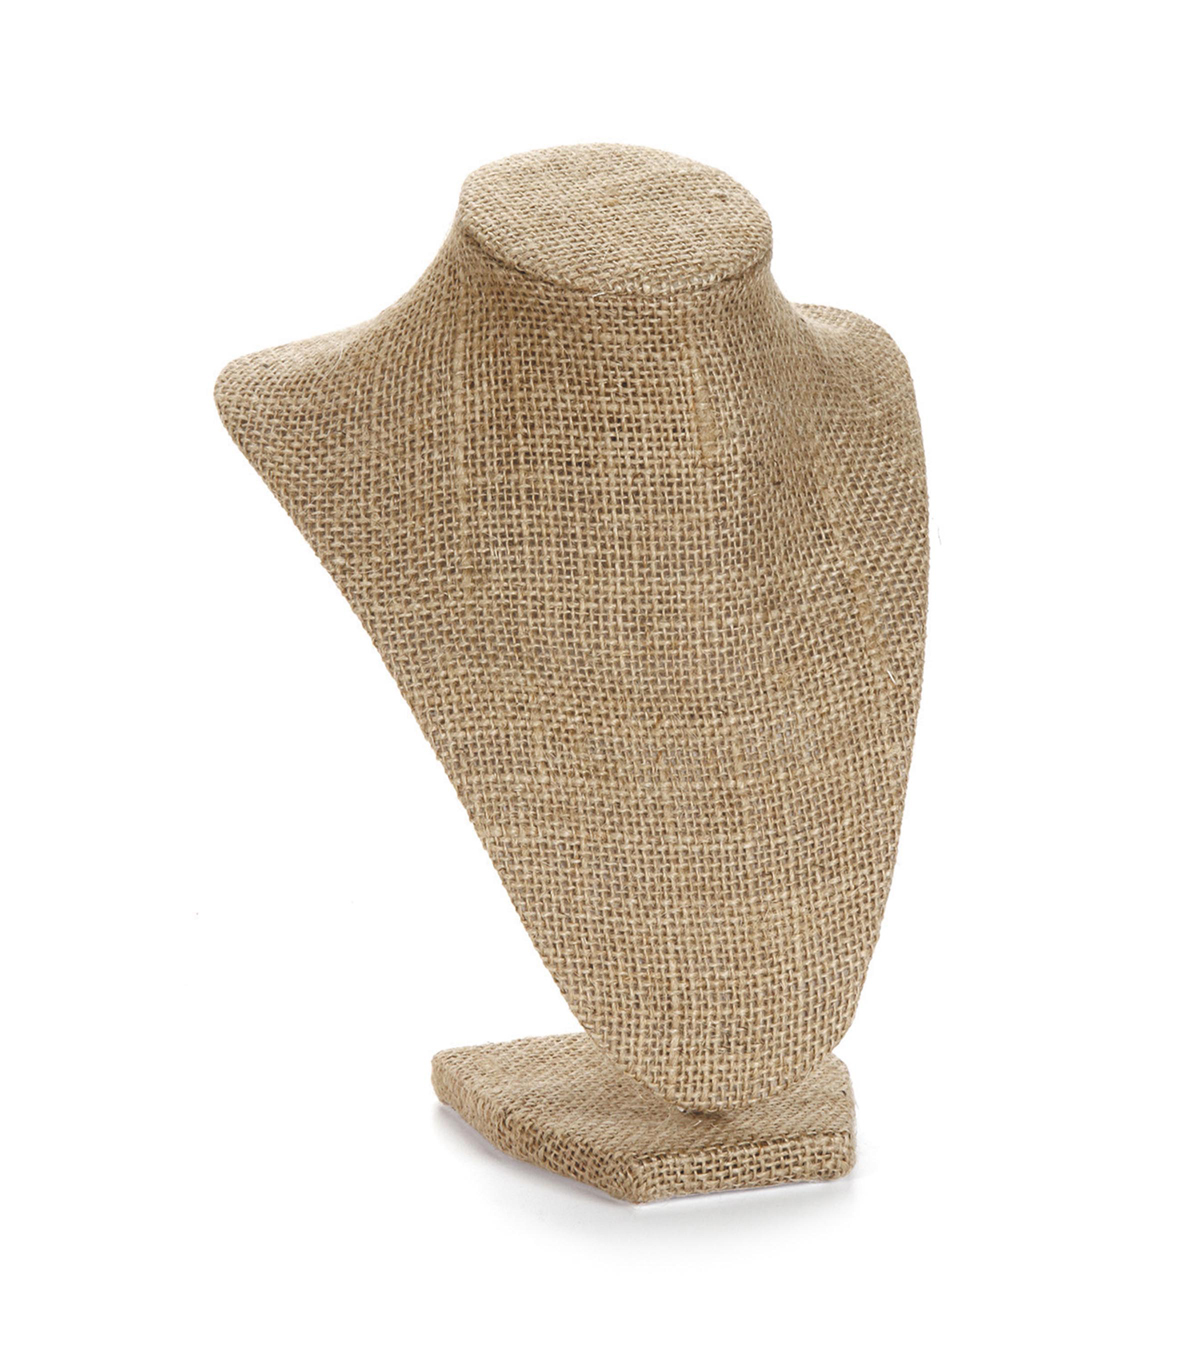 Burlap Covered 3D Jewelry Torso Stand, 9 inches